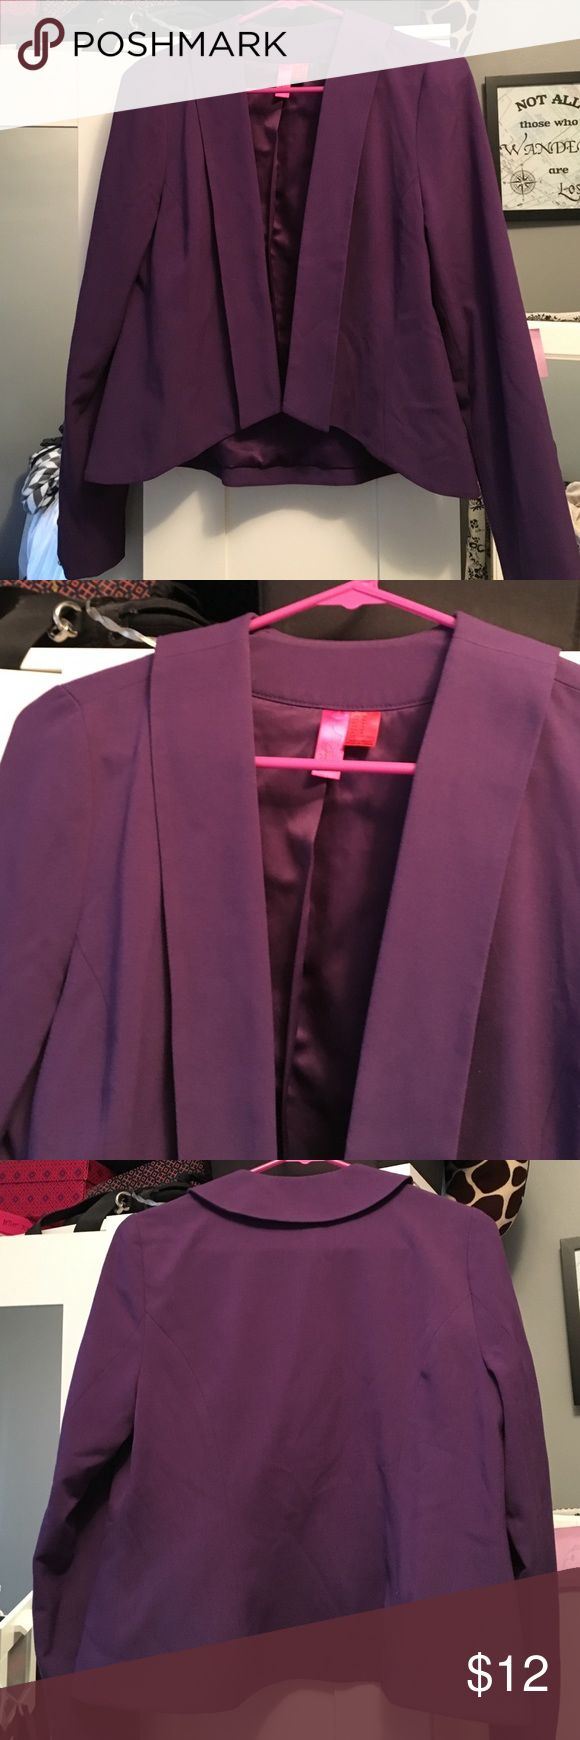 Purple blazer Adorable purple blazer! Asymmetrical front gives it a fun design. Polyester, rayon, spandex.   🚫No trades🚫  Check out my BOGO deal 🎉  Reasonable offers will be accepted through the offer feature❗️❗️❗️ Forever 21 Jackets & Coats Blazers